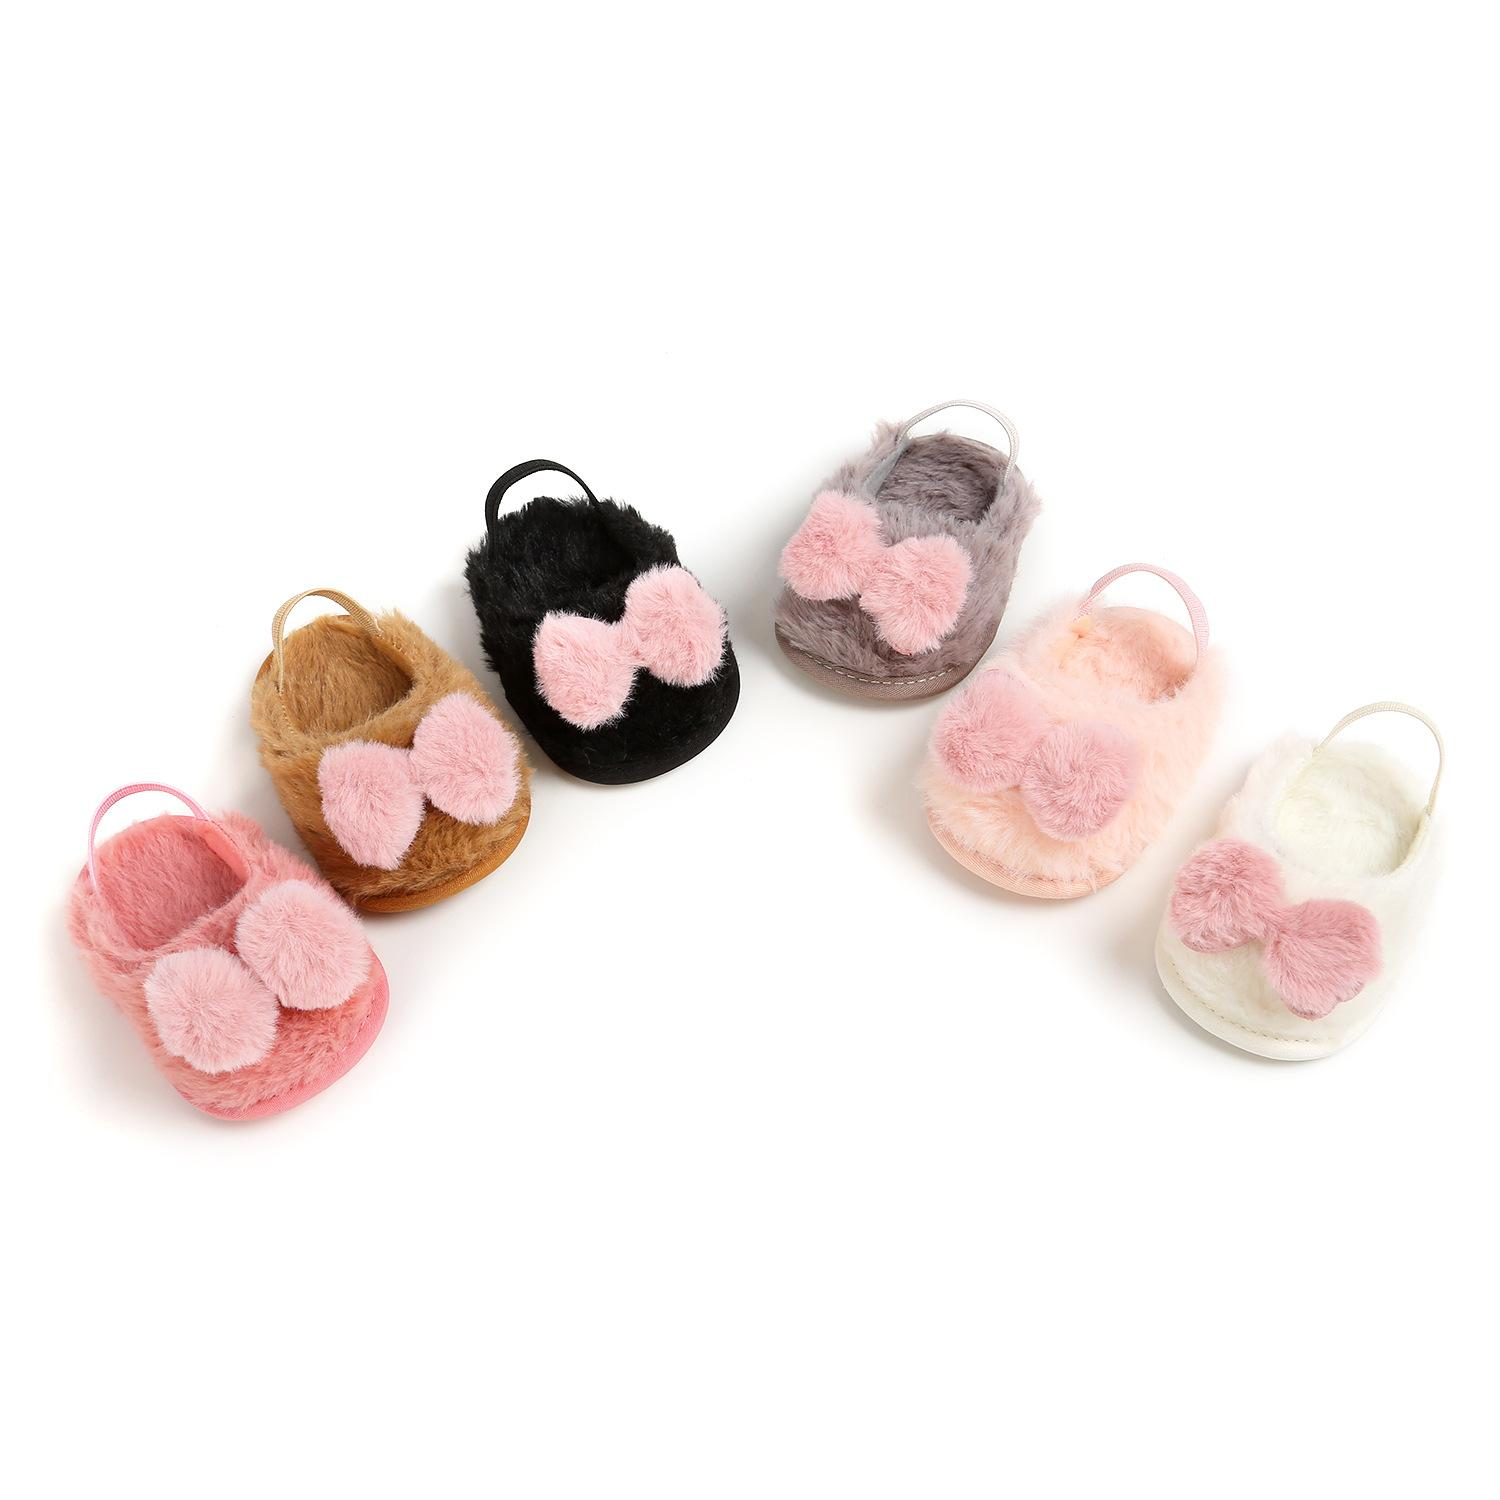 2019 Baby Girls Sandals Baby Moccasins First Walkers Infant Sandals Soft Sole Non-slip Fashion Plush Newborn Baby Shoes.DX215C